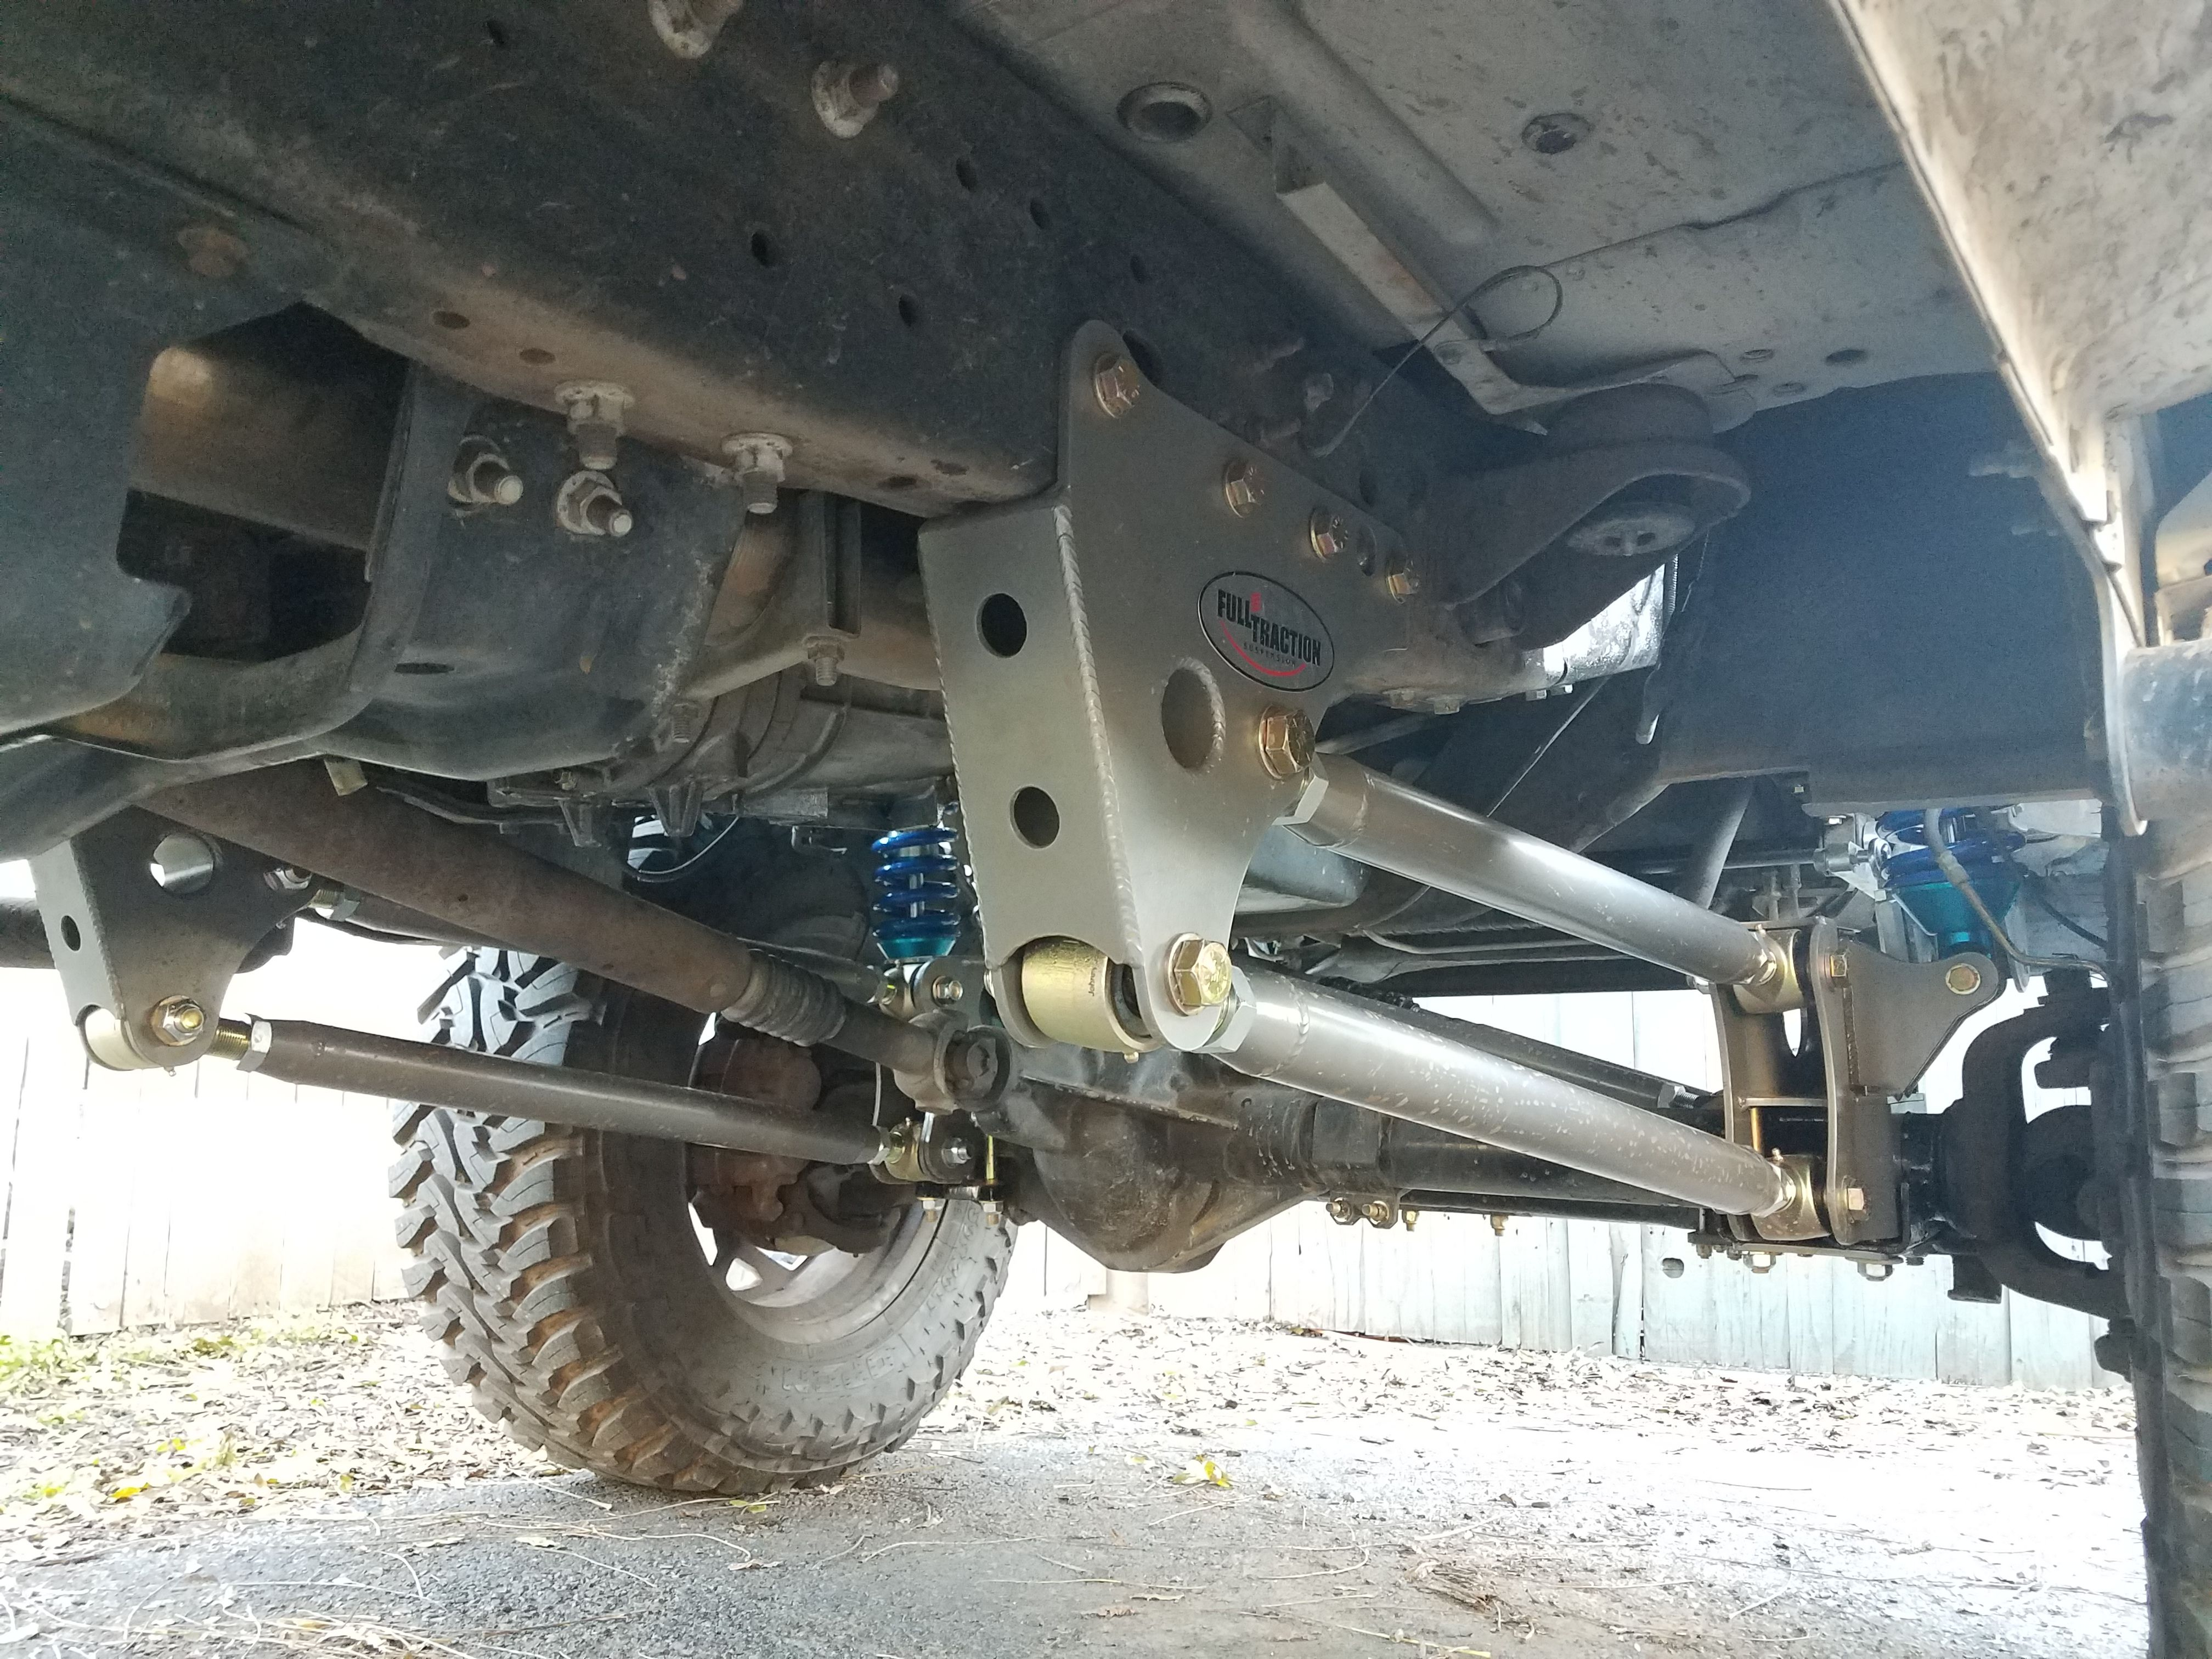 1999 2000 2001 2002 2003 f250 f350 7 3l 6 0 diesel excursion super duty leaf spring delete 4 link king coil over conversion full traction toyo mt 37 bmf  [ 4032 x 3024 Pixel ]